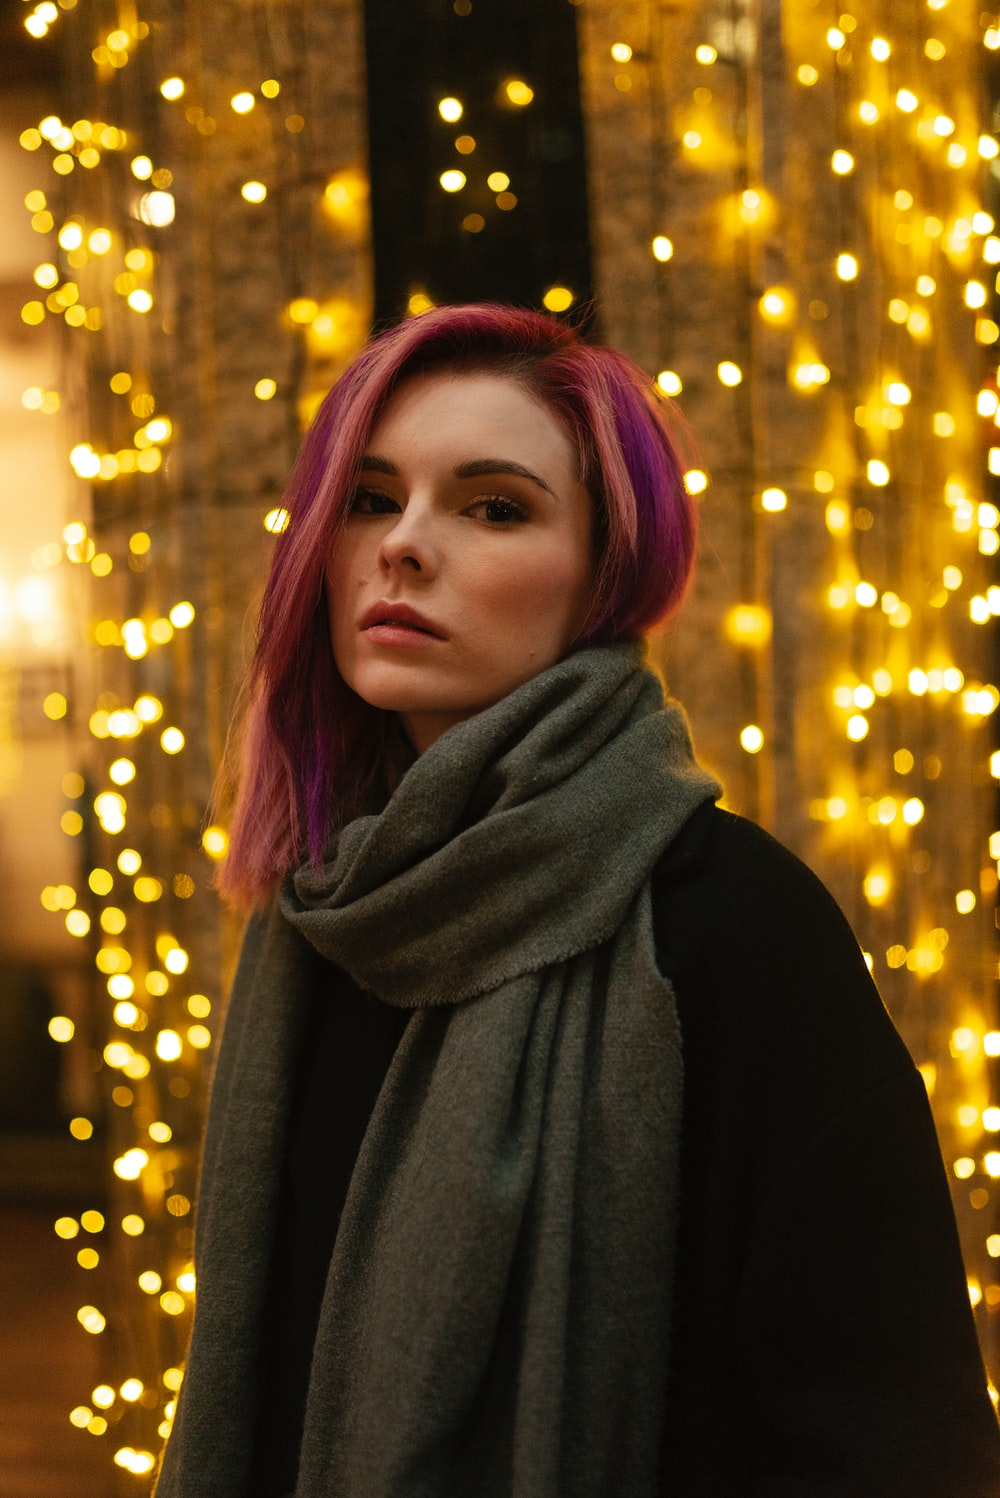 woman in black scarf standing near yellow lights